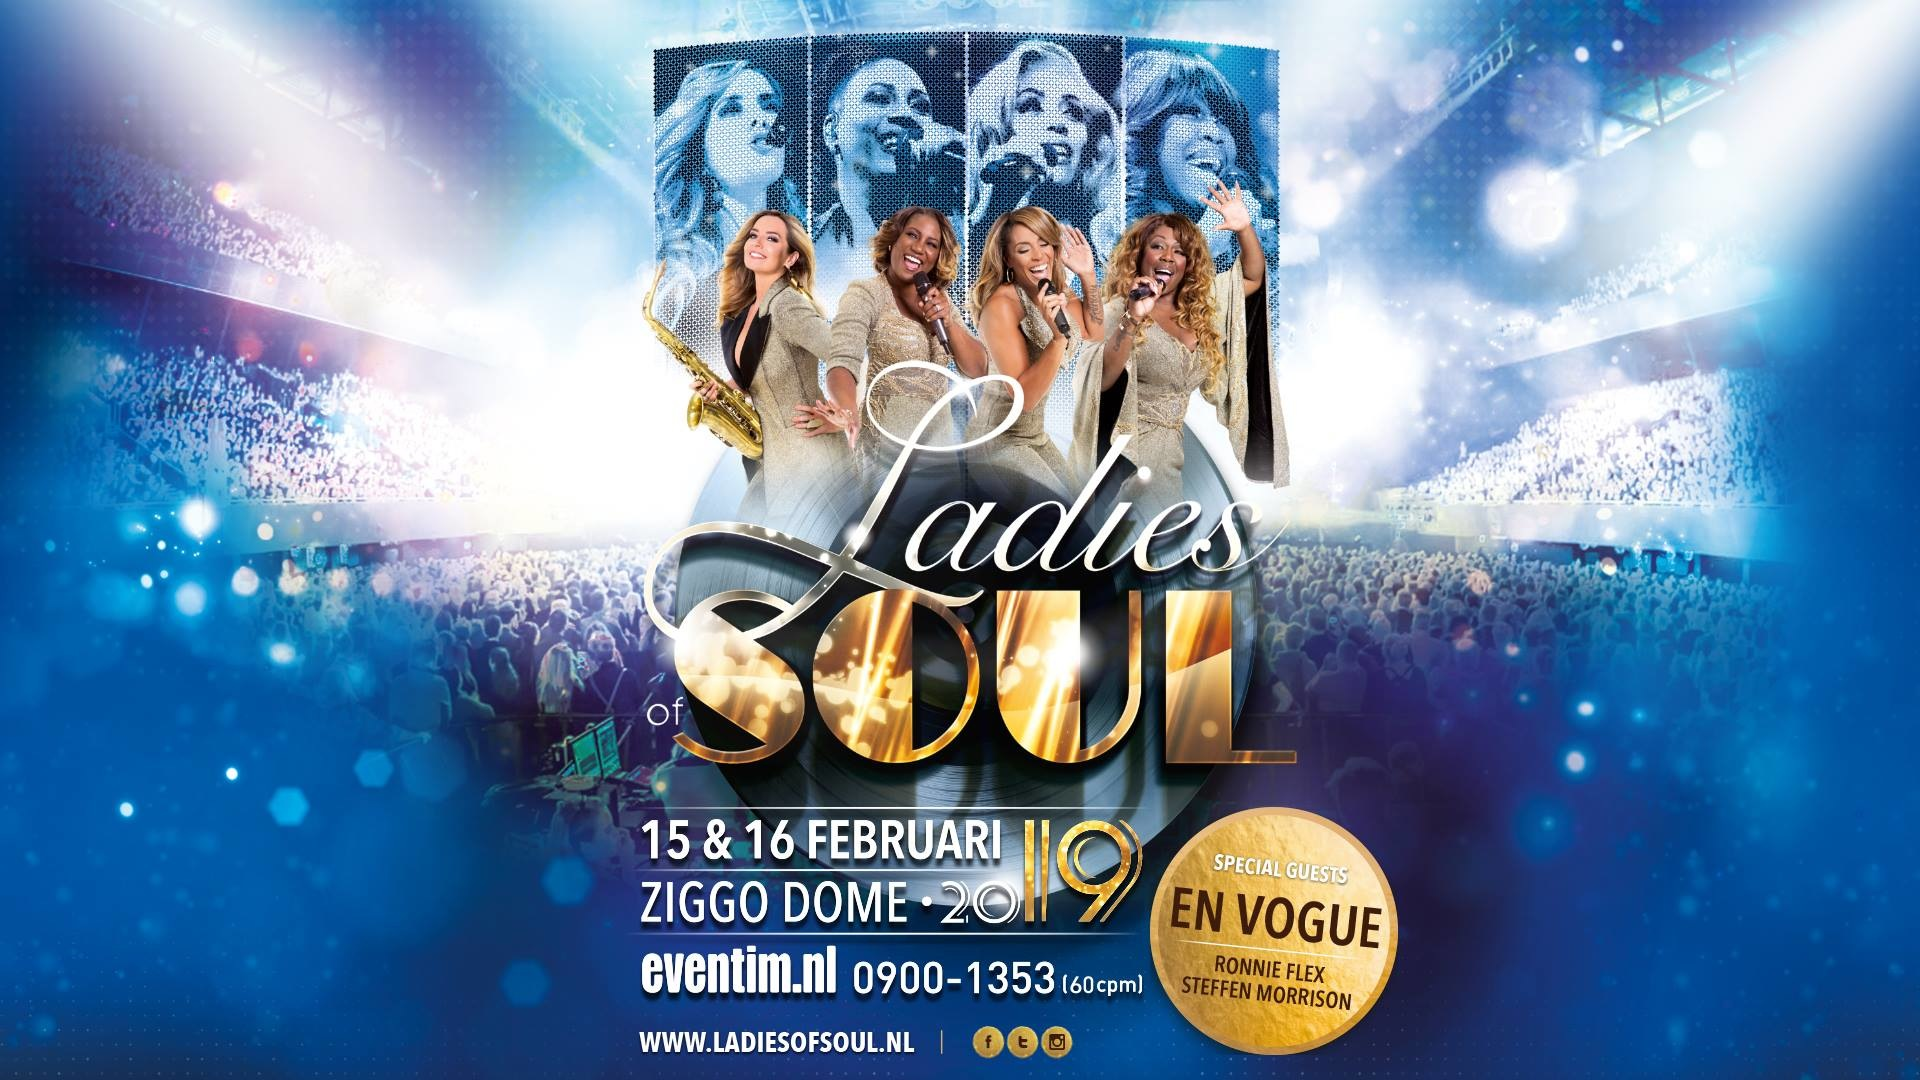 Ladies of Soul 2019 - Tickets, line-up & info